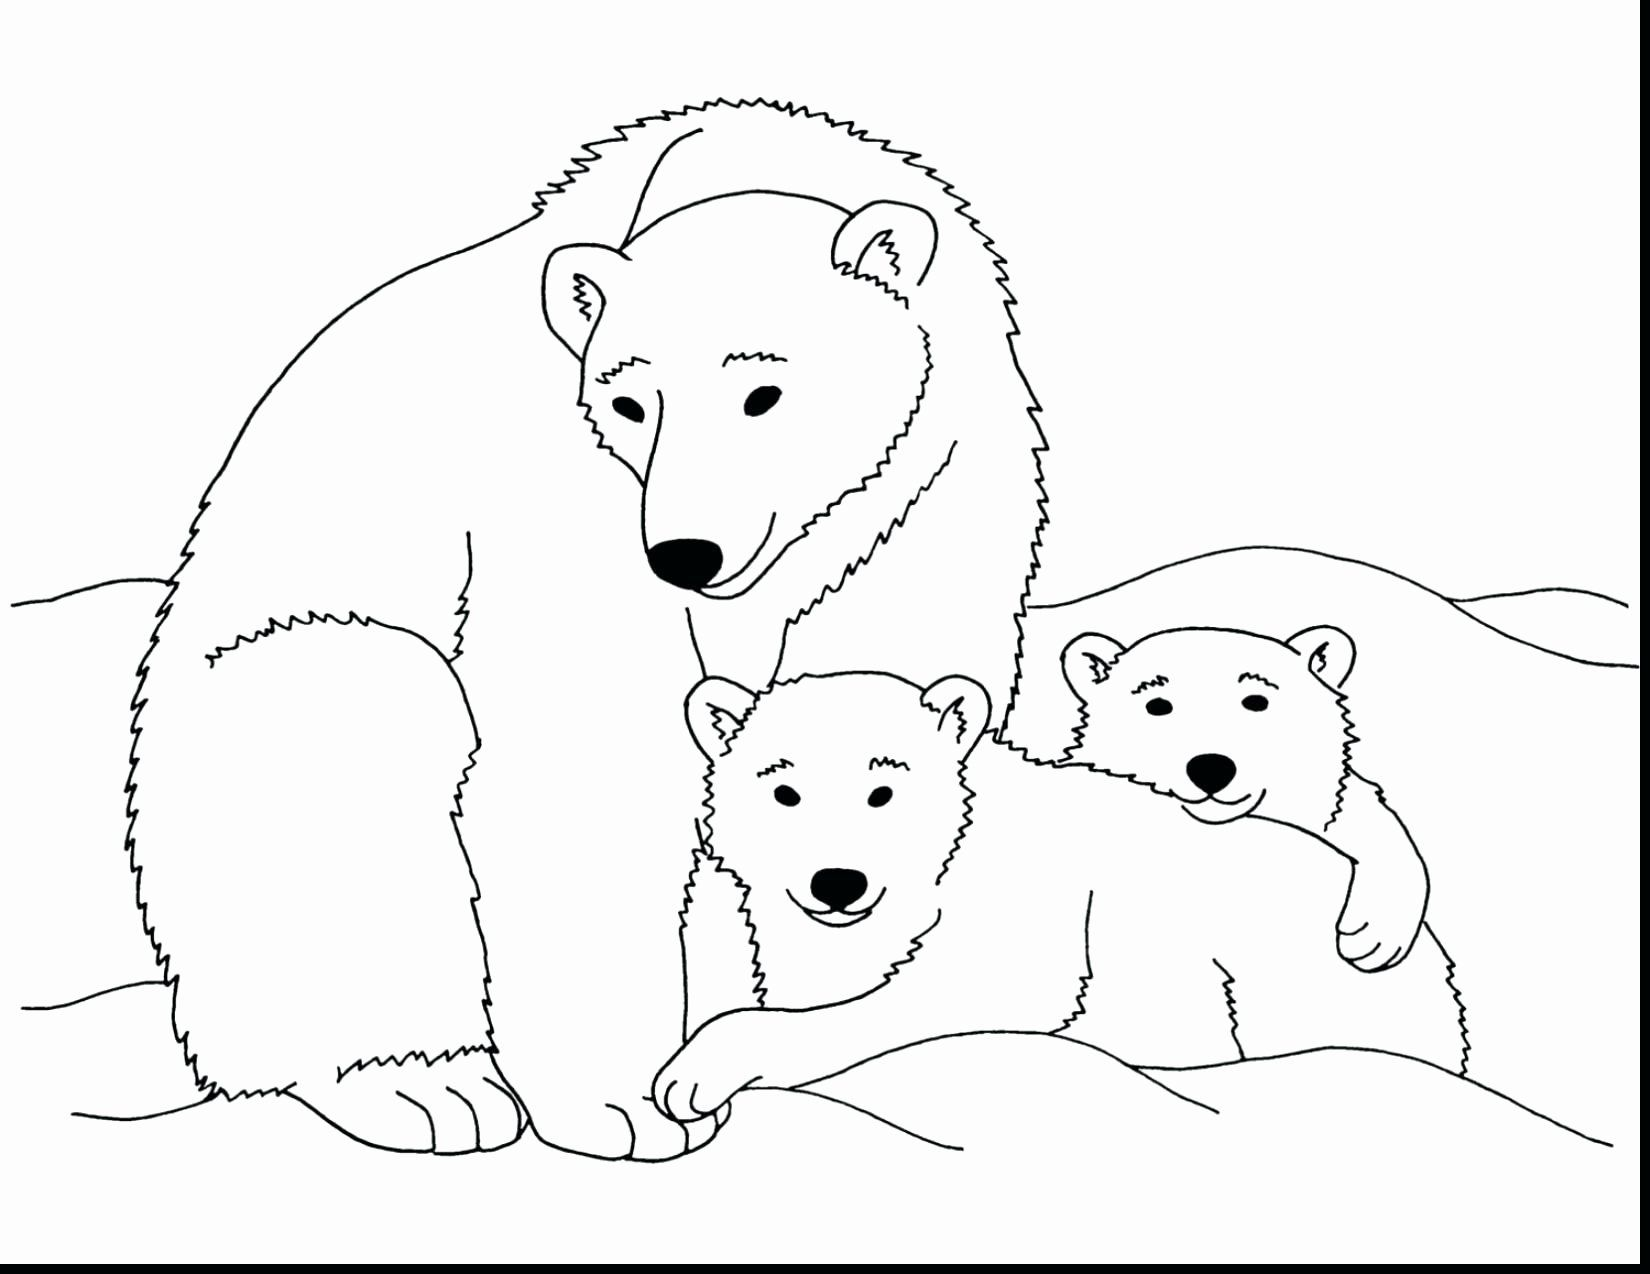 polar bear coloring peepsburgh express best friends my child ate lip liner cool pictures coloring pages Polar Express Coloring Page